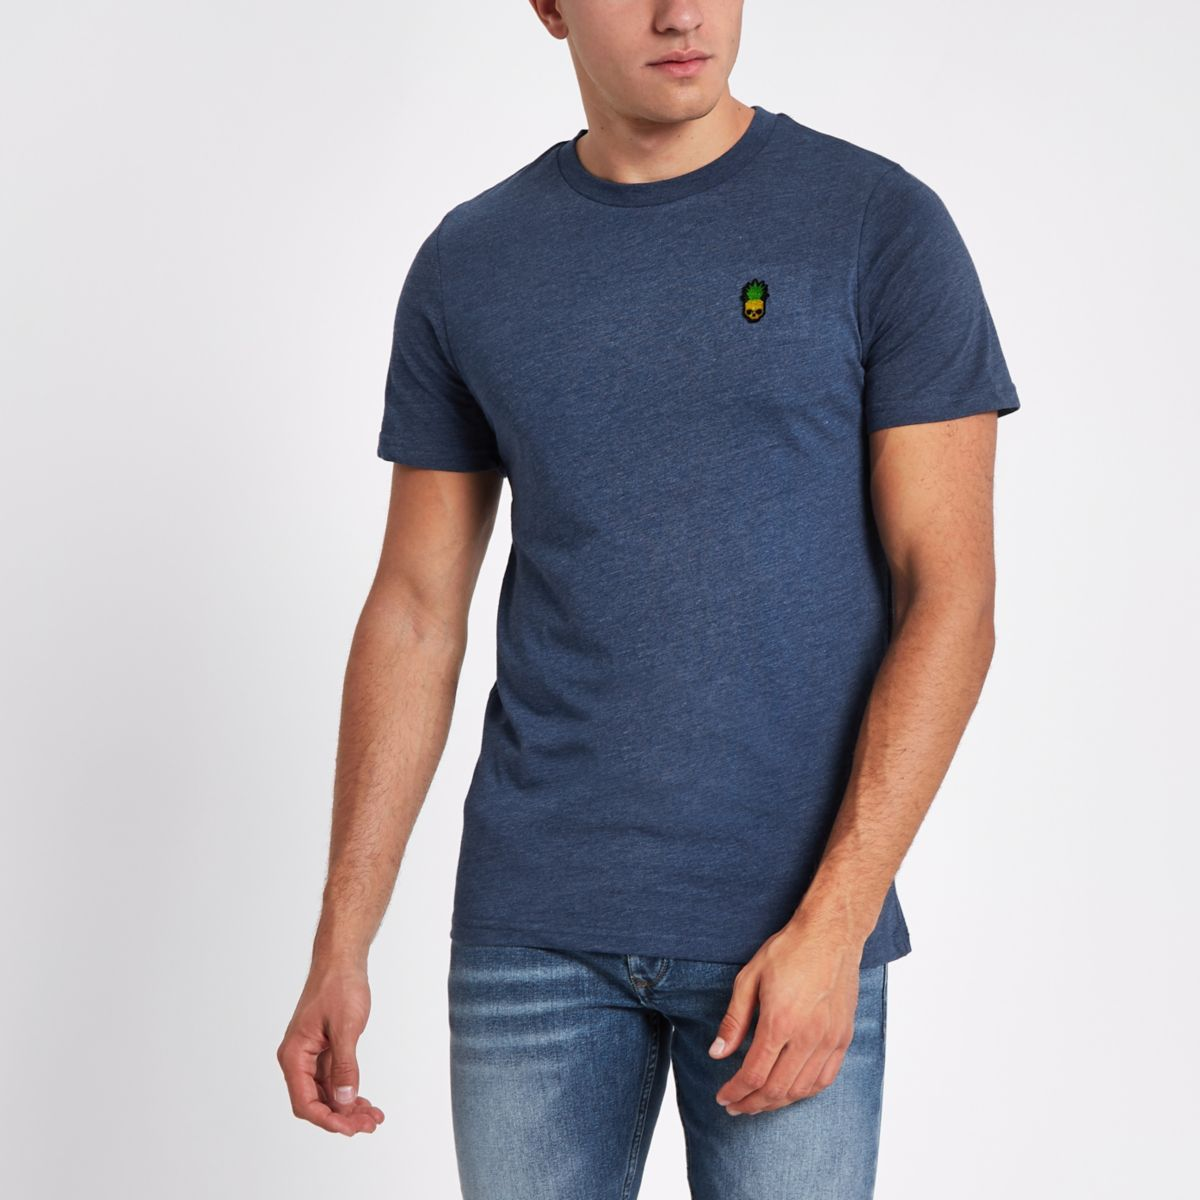 Jack & Jones Originals blue crew neck T-shirt